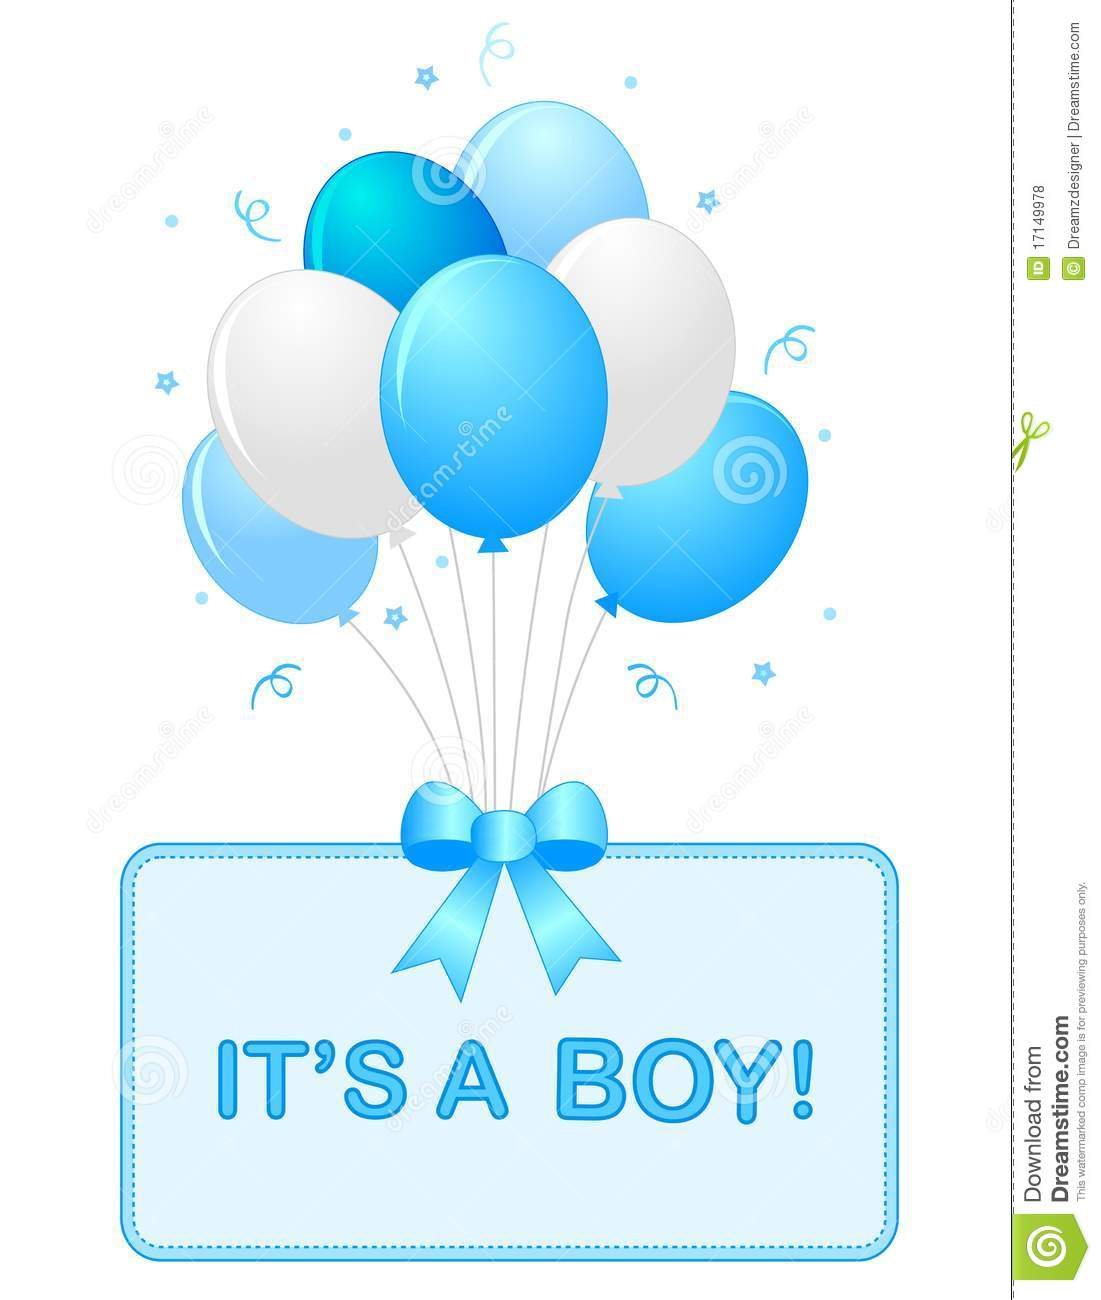 Baby Boy Announcement Royalty Free Stock Photos - Image: 17149978